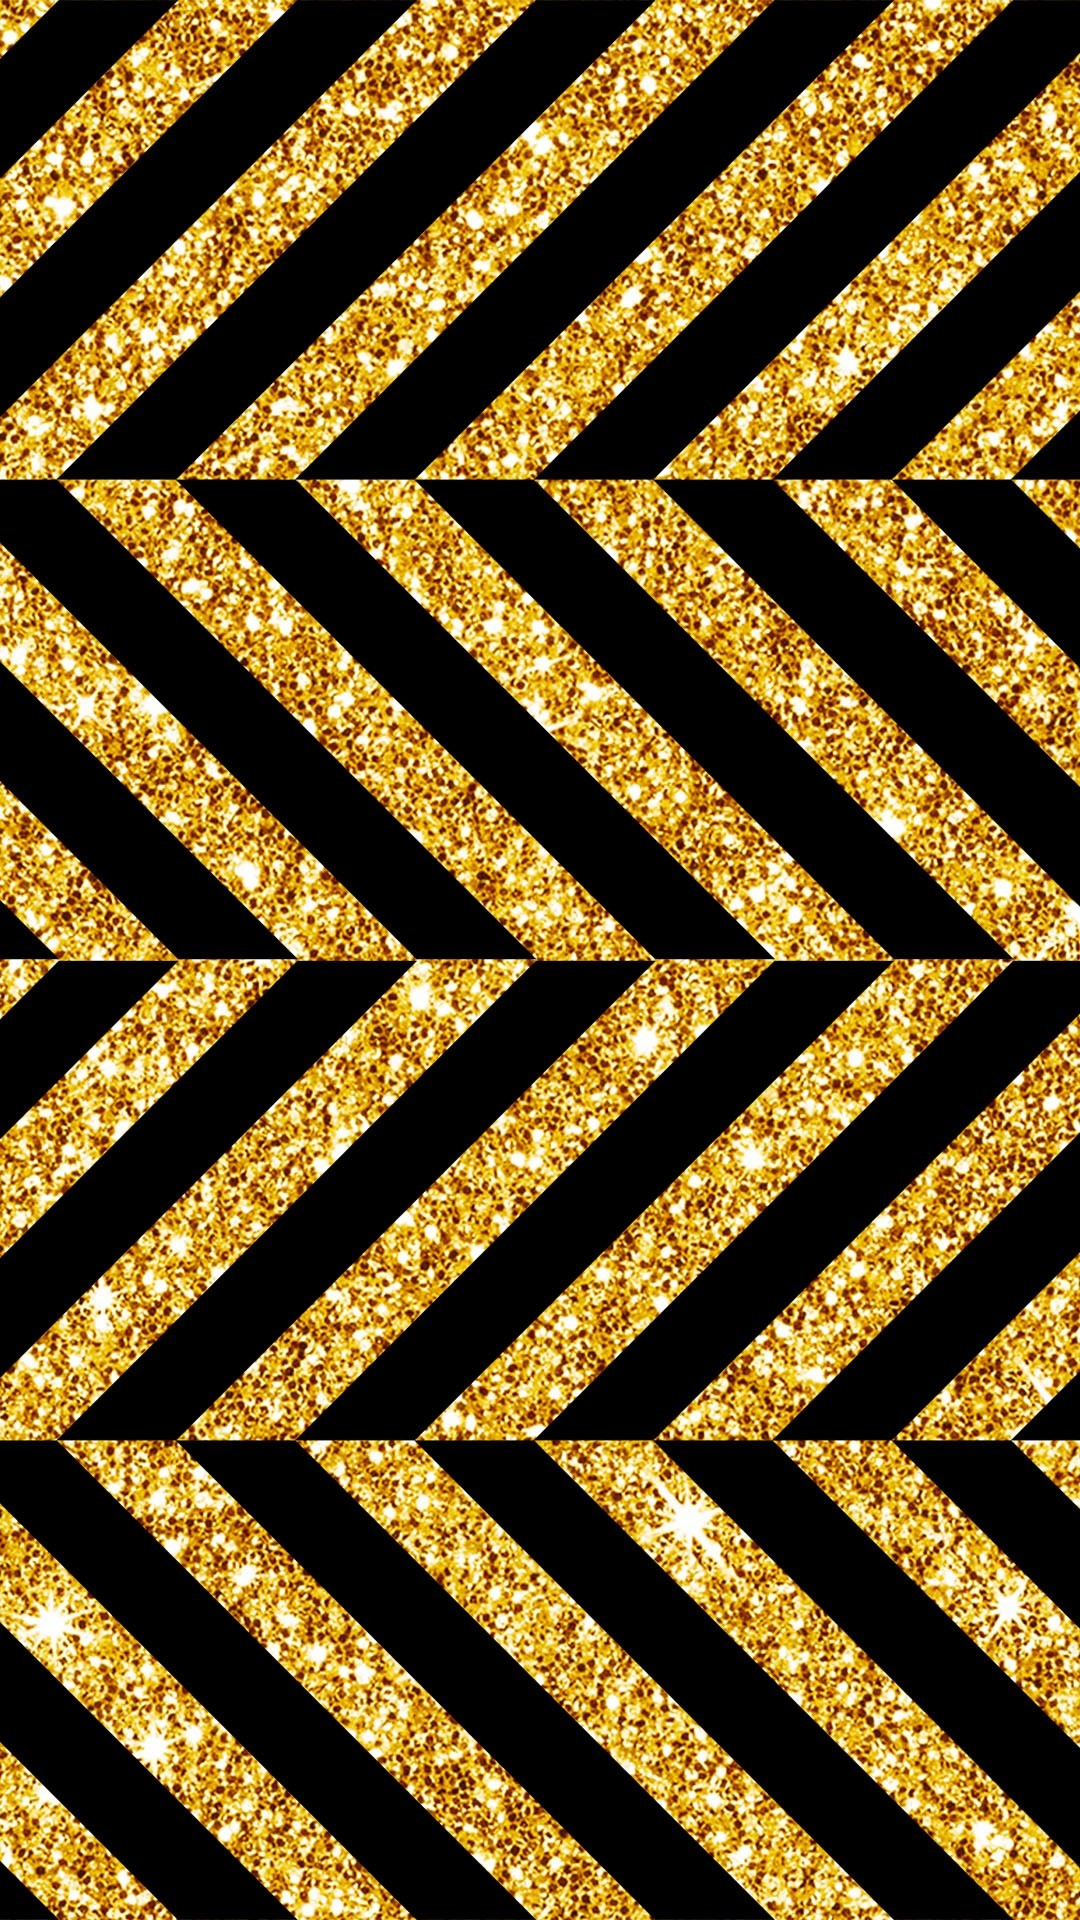 Cute Wallpapers, Phone Wallpapers, Phone Backgrounds, Patterns, Gold,  Design, Chevron, Sparkle, Glitter